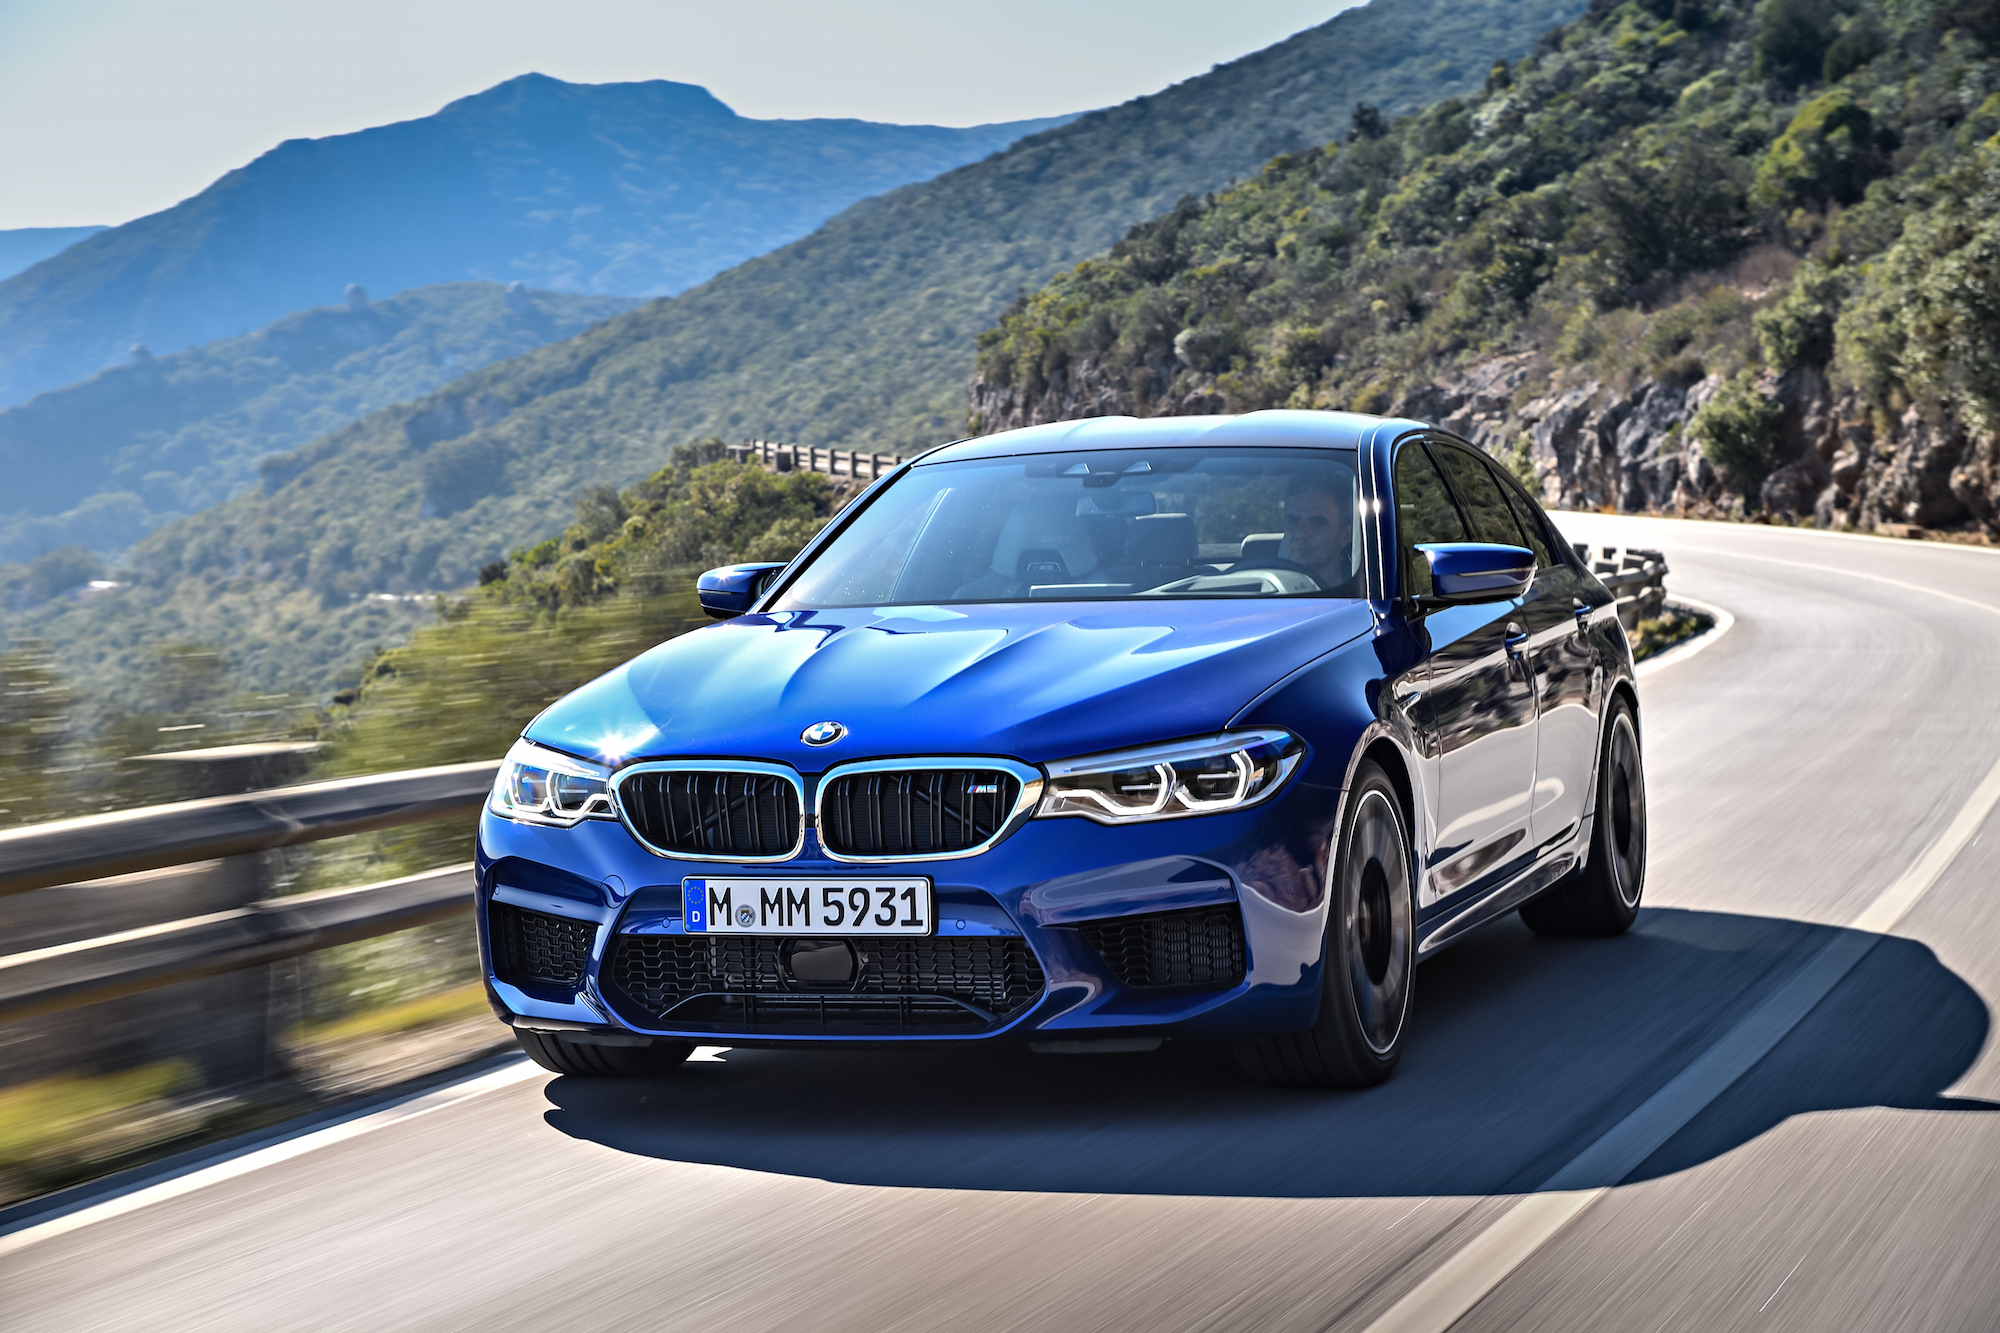 2018 bmw m5 exhaust notes canadian auto review. Black Bedroom Furniture Sets. Home Design Ideas